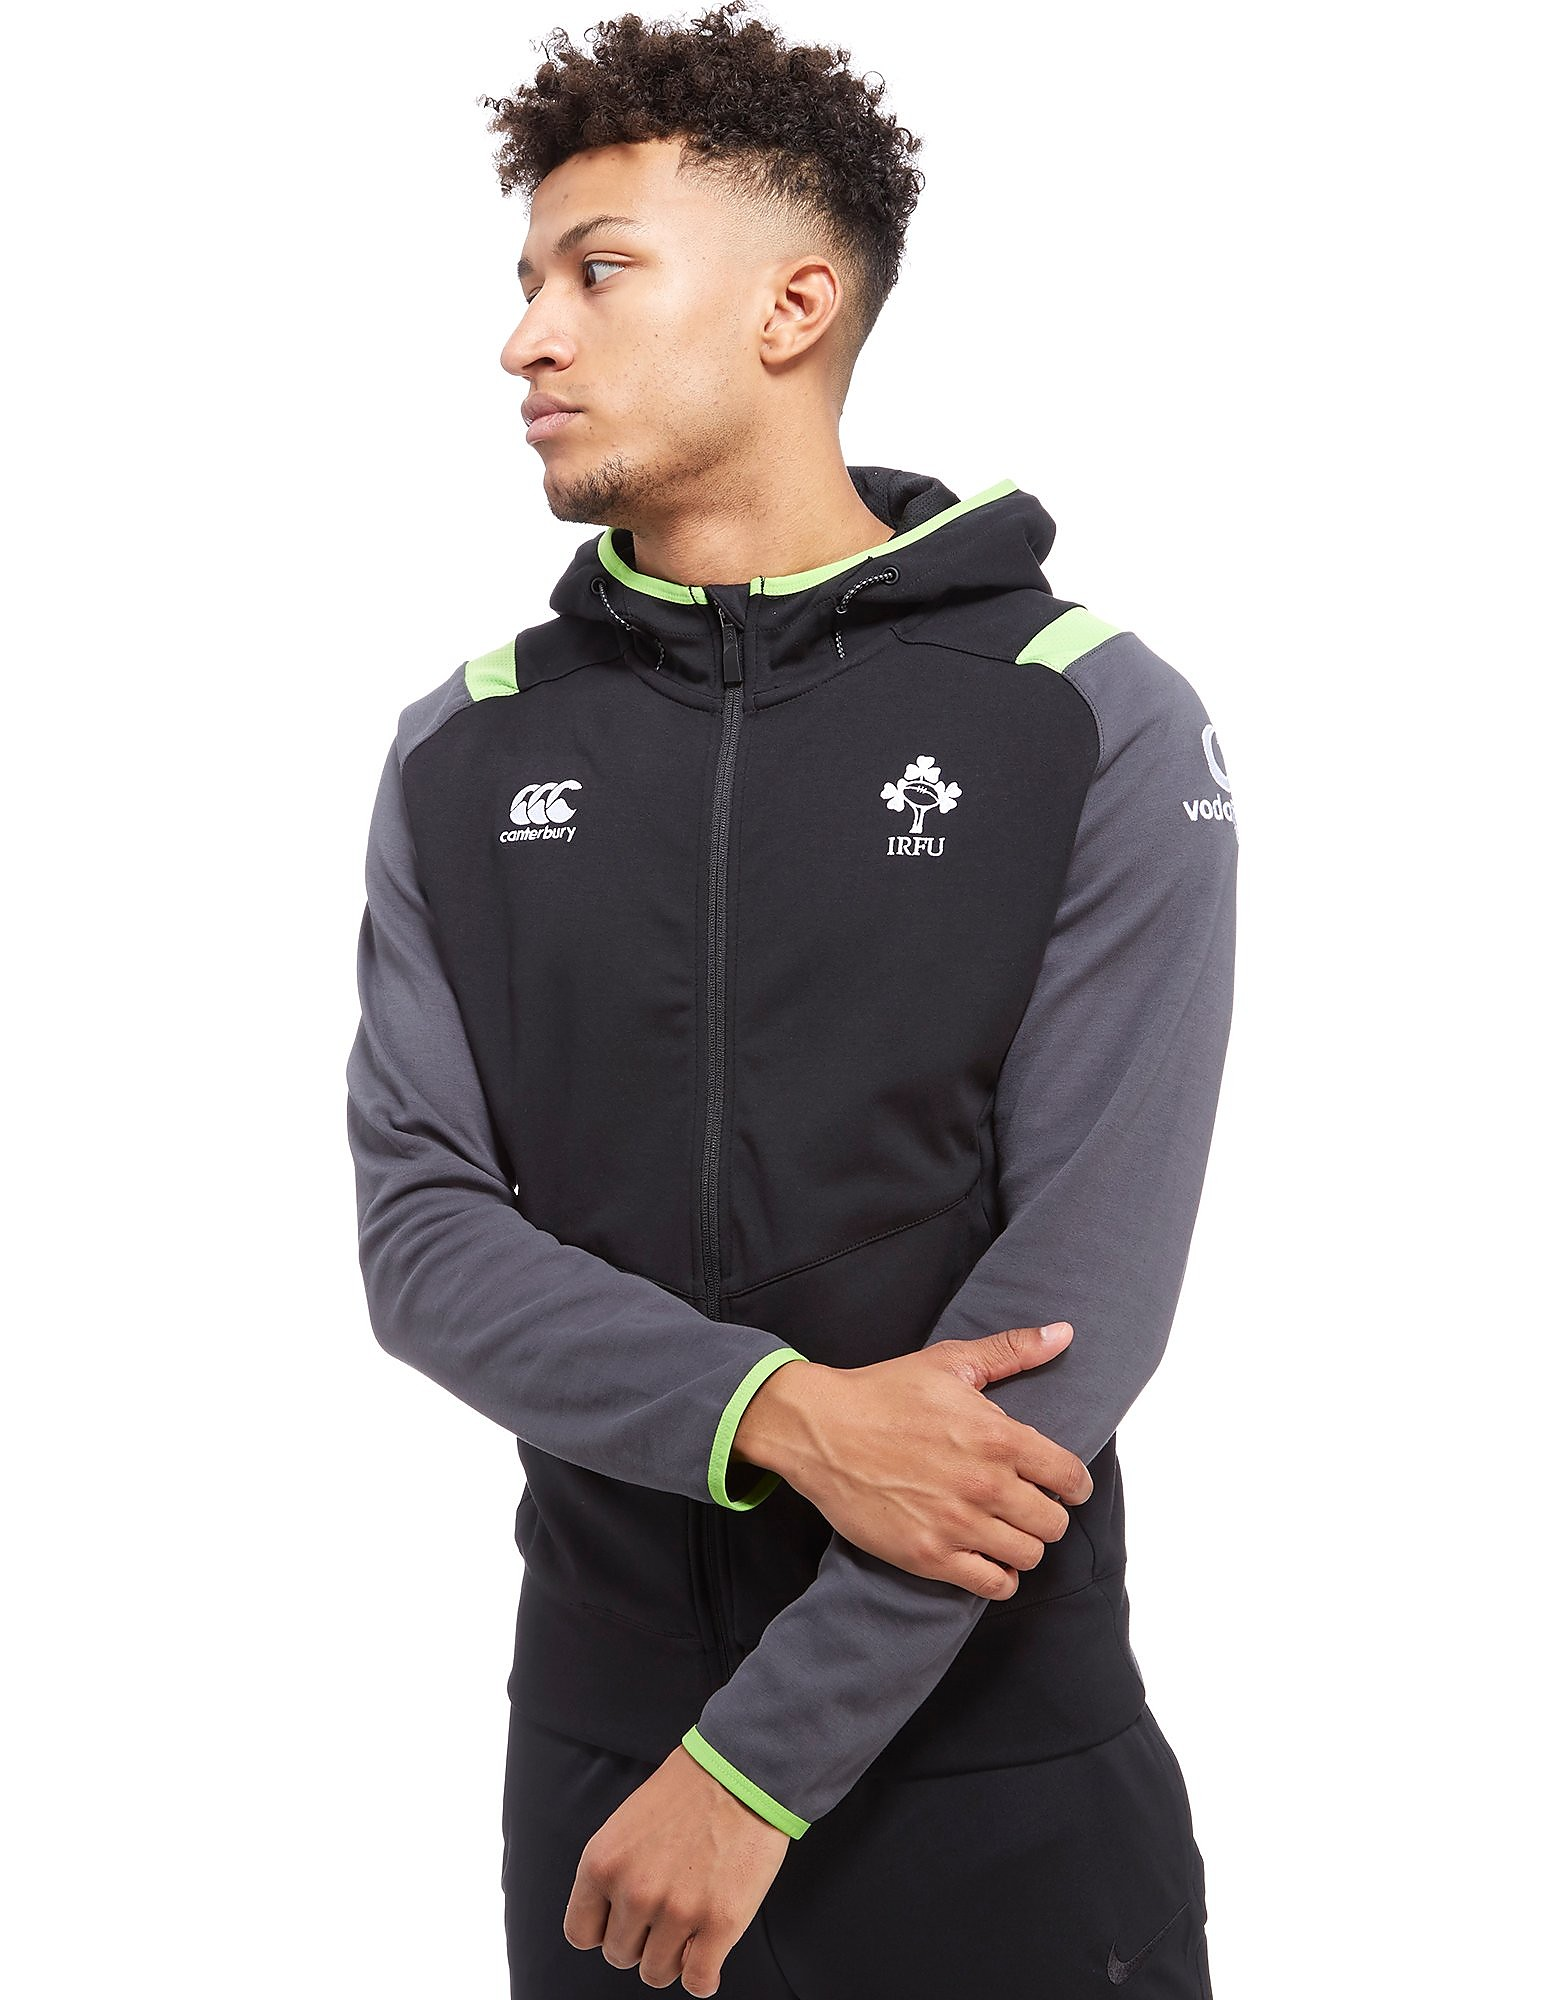 Canterbury Ireland RFU Training Hoody